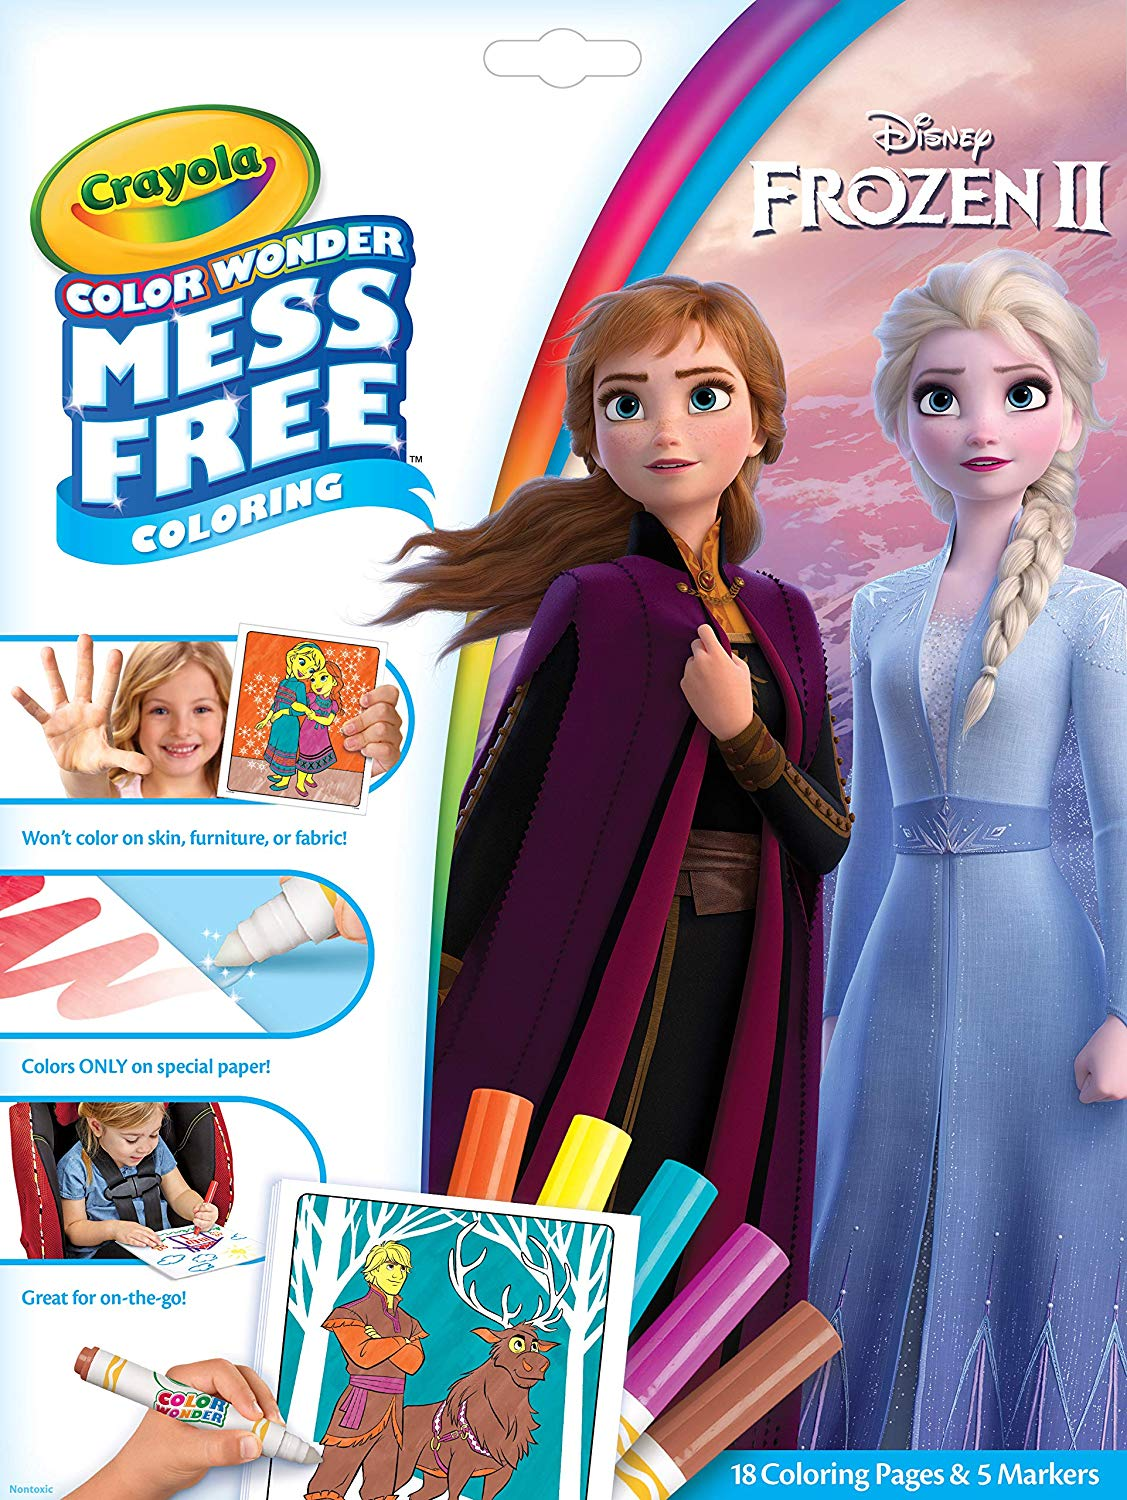 Crayola Frozen 2 Color Wonder Mess Free Coloring Pages and Markers